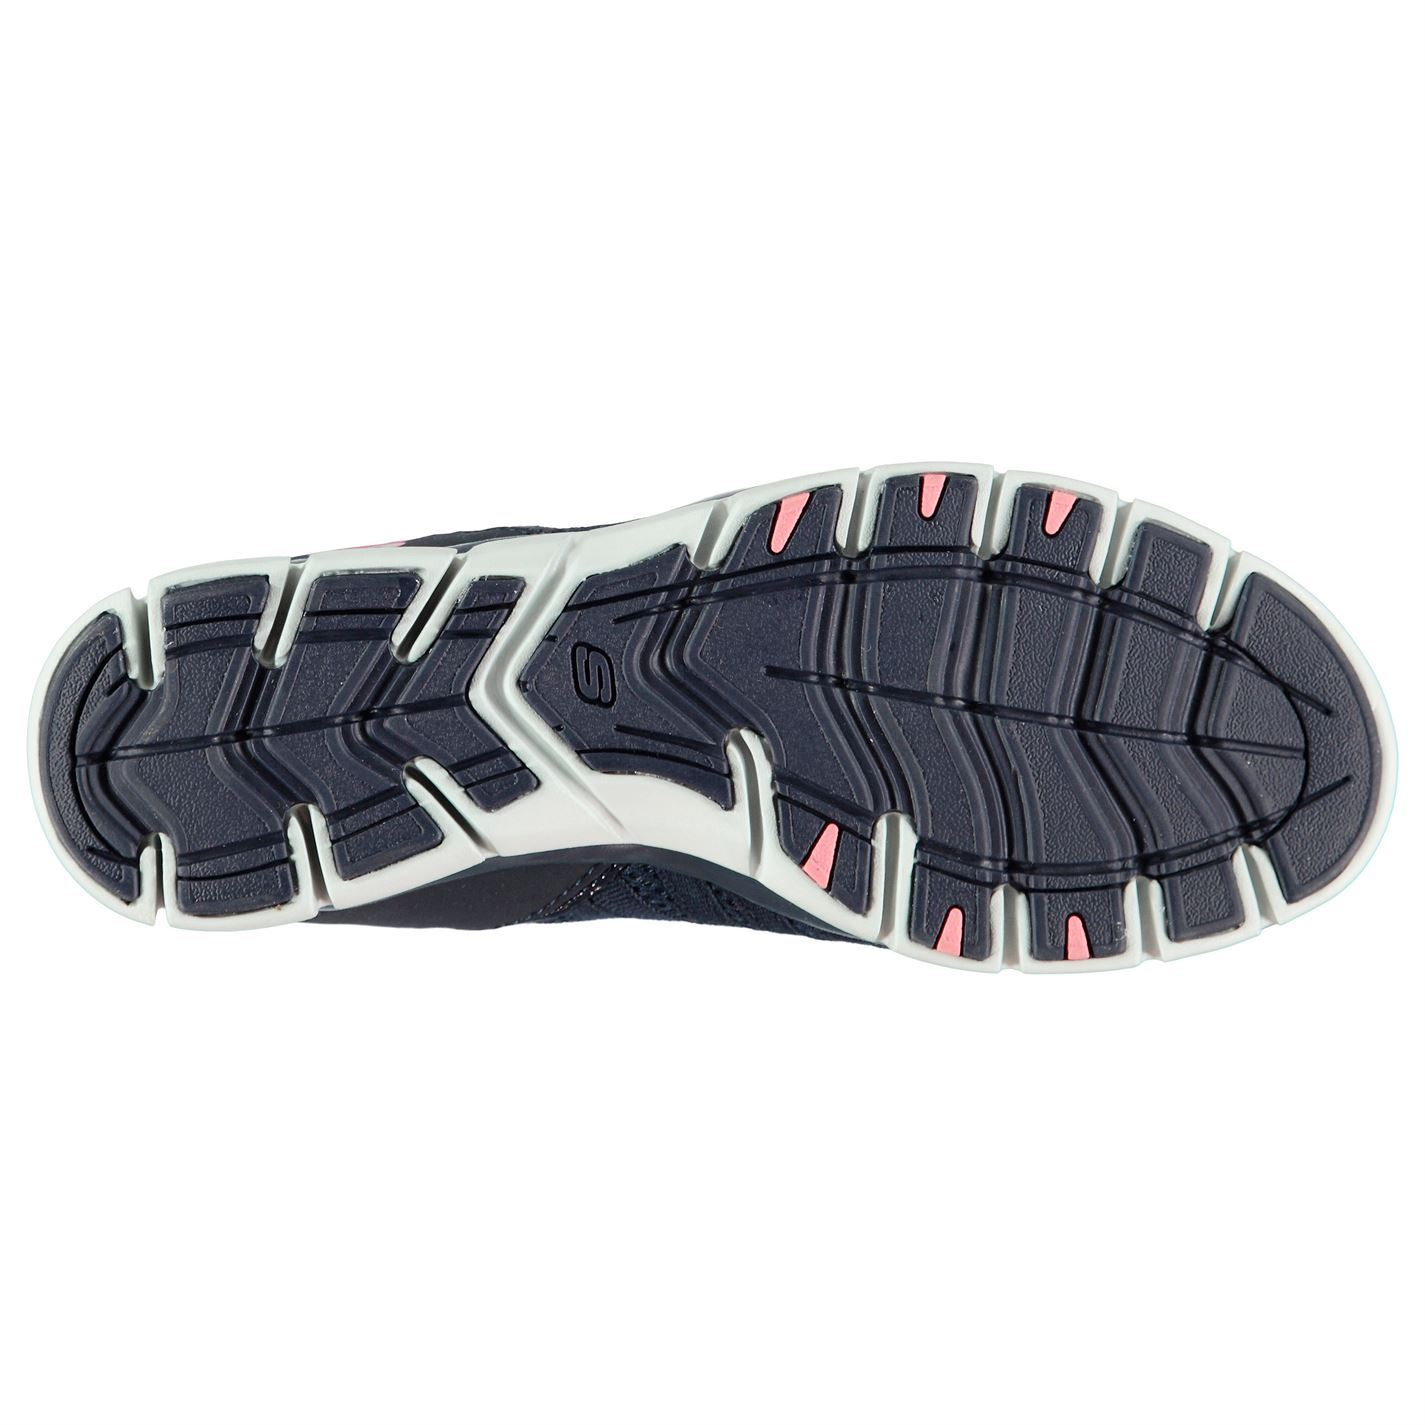 Trainers Skechers Love Womens Navy Ladies Blue Gratis coral Shoes Footwear qqpfCEx